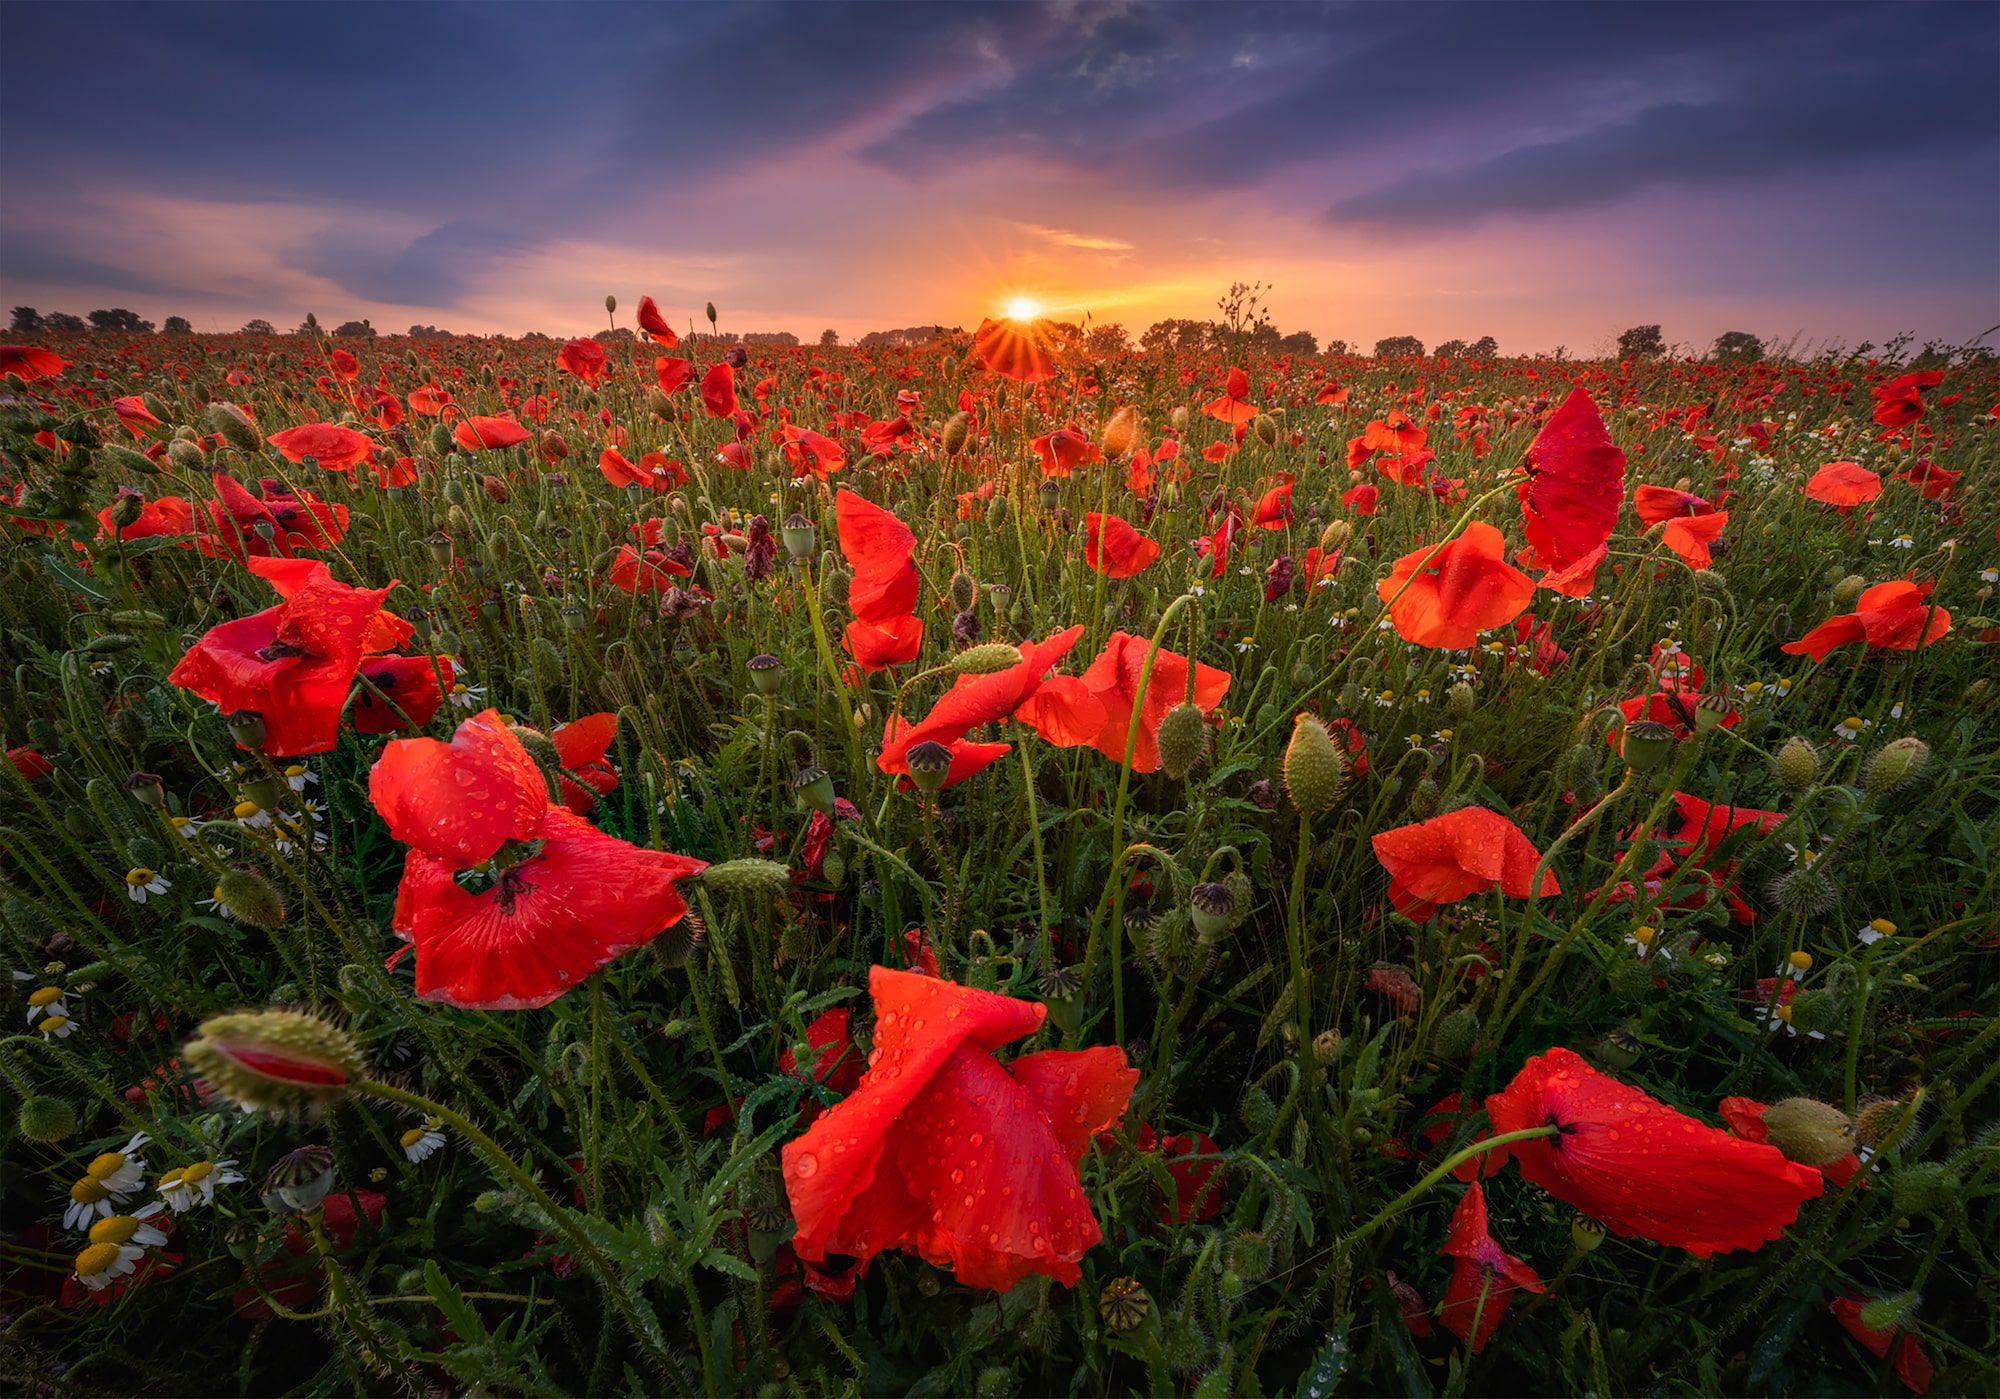 albert dros sony alpha 7RM4 a poppy field in the netherlands after a rainstorm